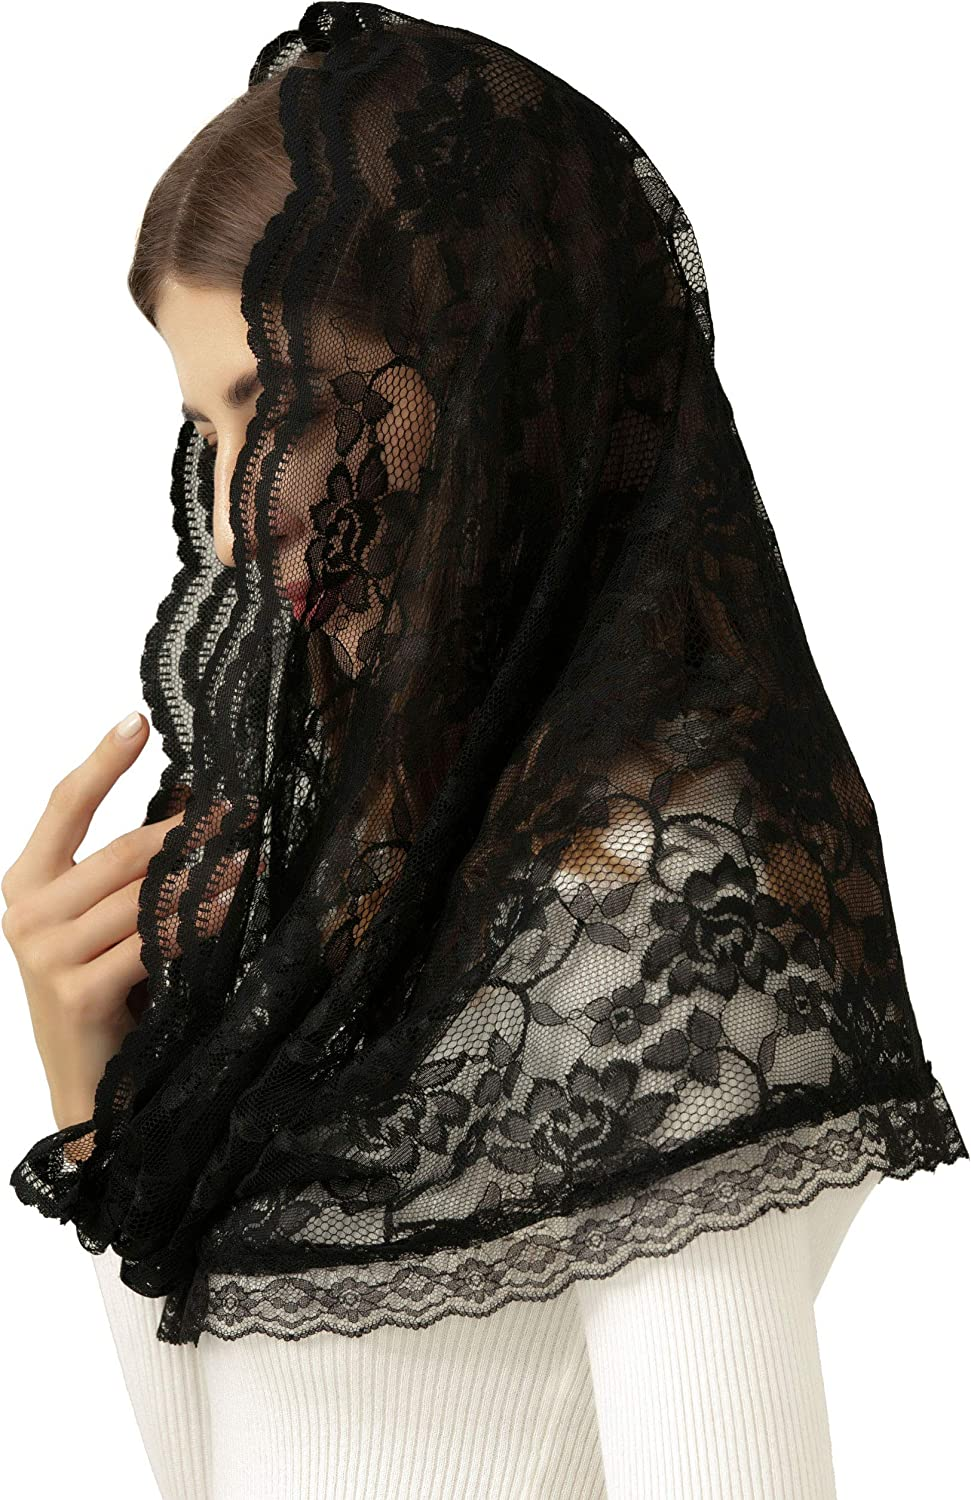 Pamor Infinity Floral Veils Scarf Veil Head Covering Latin Mass Lace Mantilla with Free Hairclip